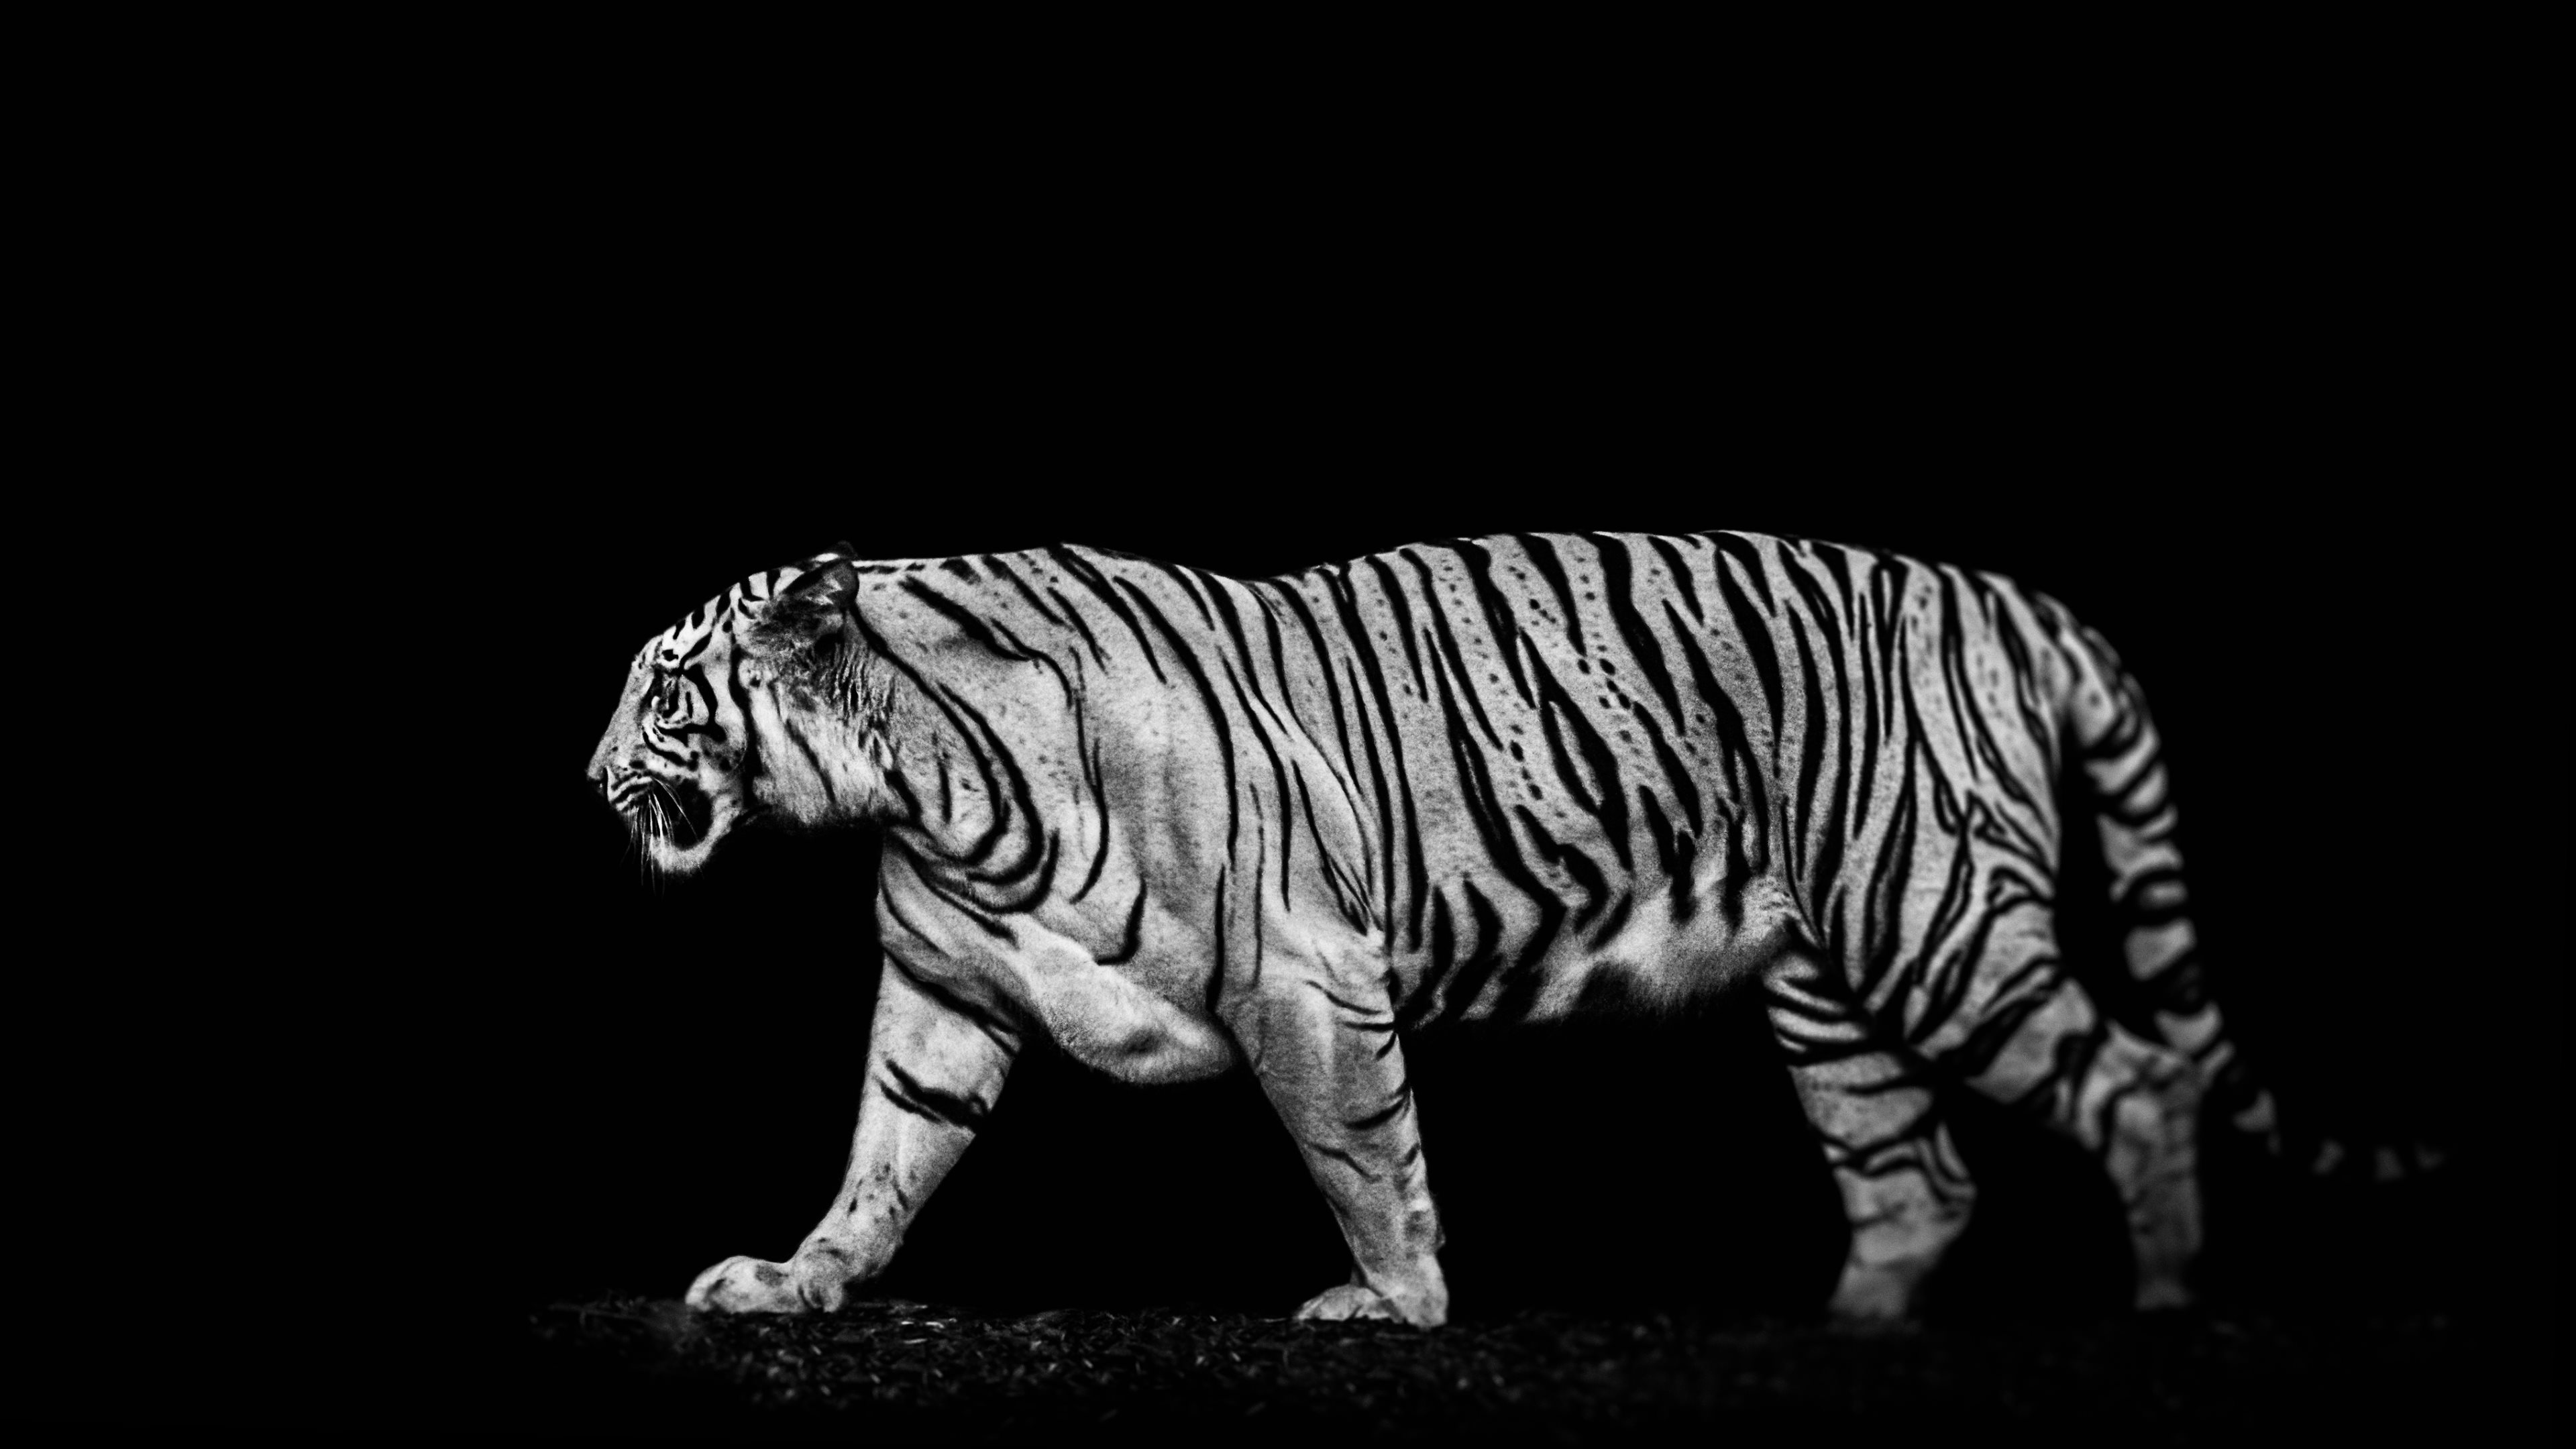 free download white tiger backgrounds | wallpaper.wiki